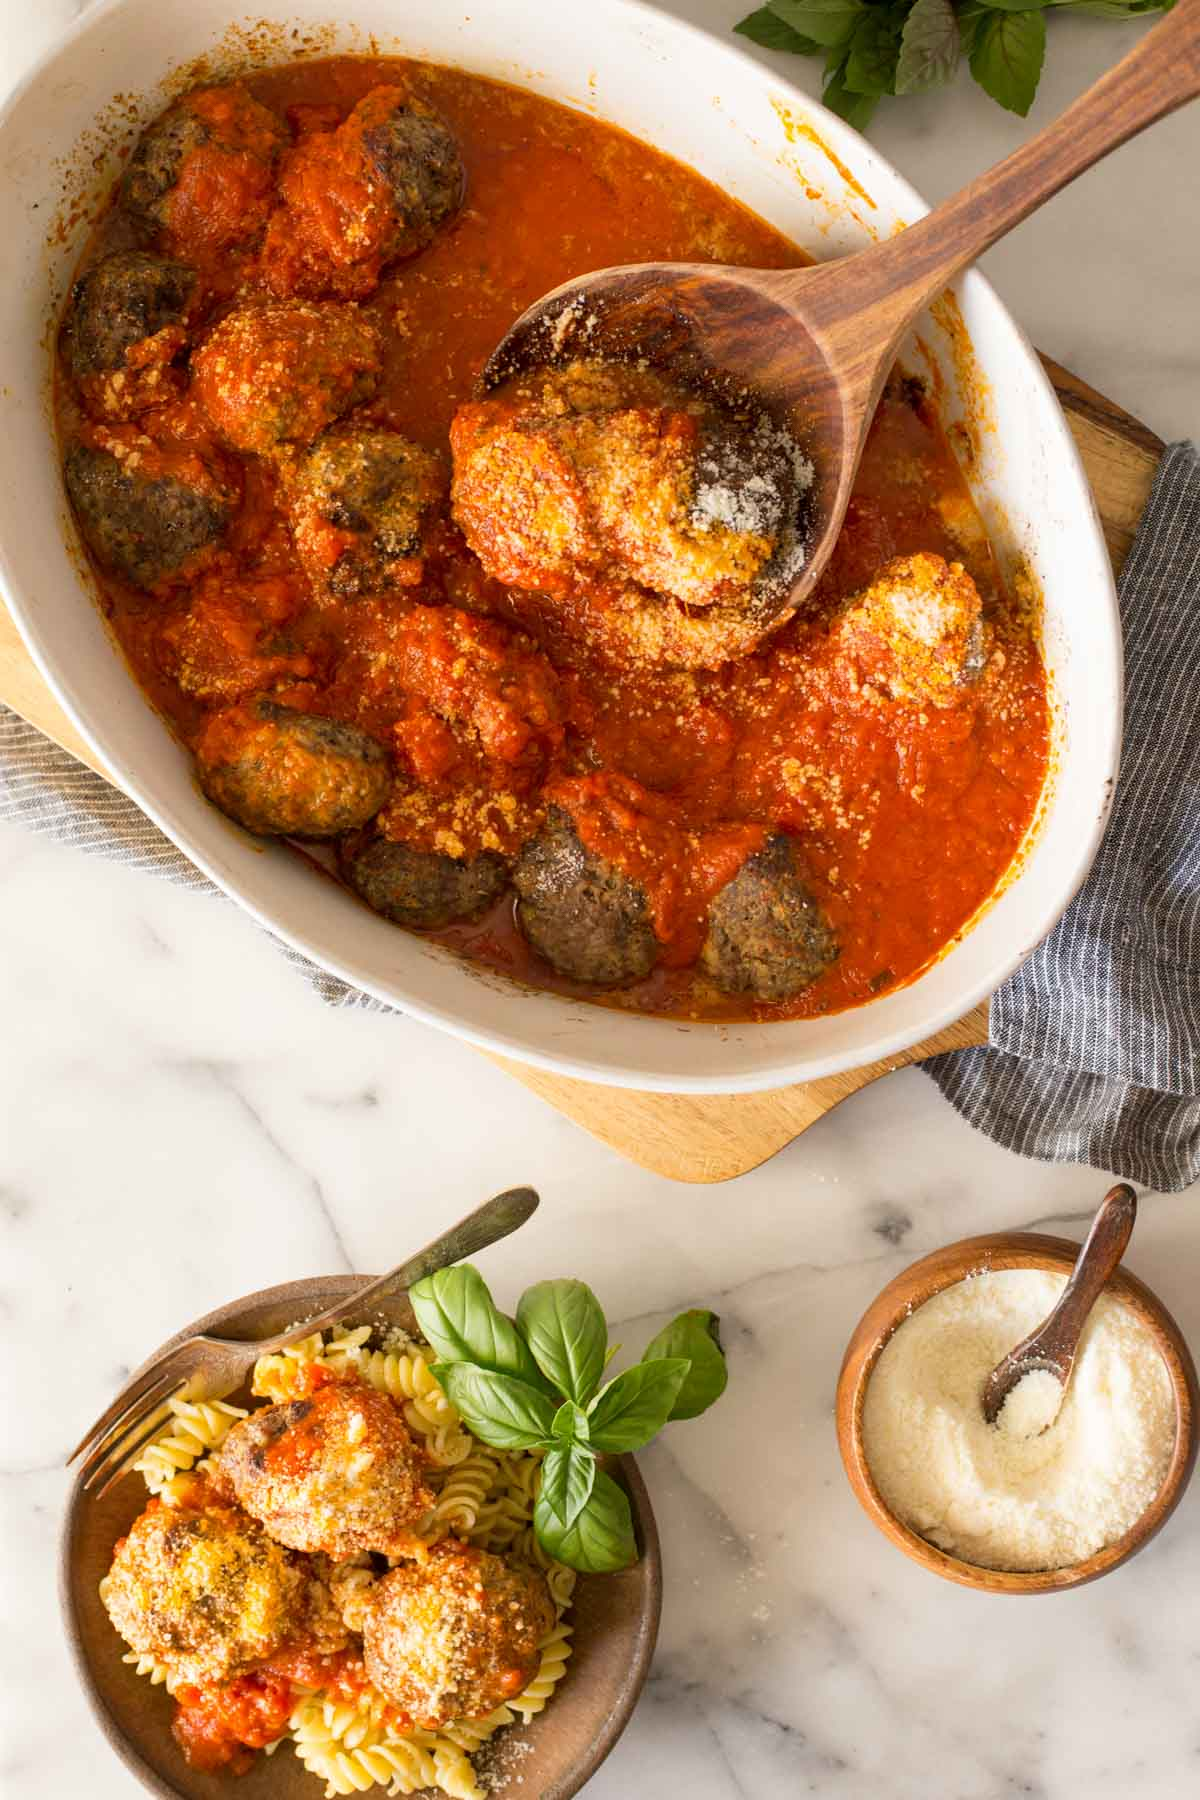 Overhead shot of Easy Broiled Italian Meatballs in a baking dish with a wood serving spoon in the meatballs, and a bowl of meatballs served over rotini pasta and a small wood bowl of Parmesan cheese both next to the cutting board.